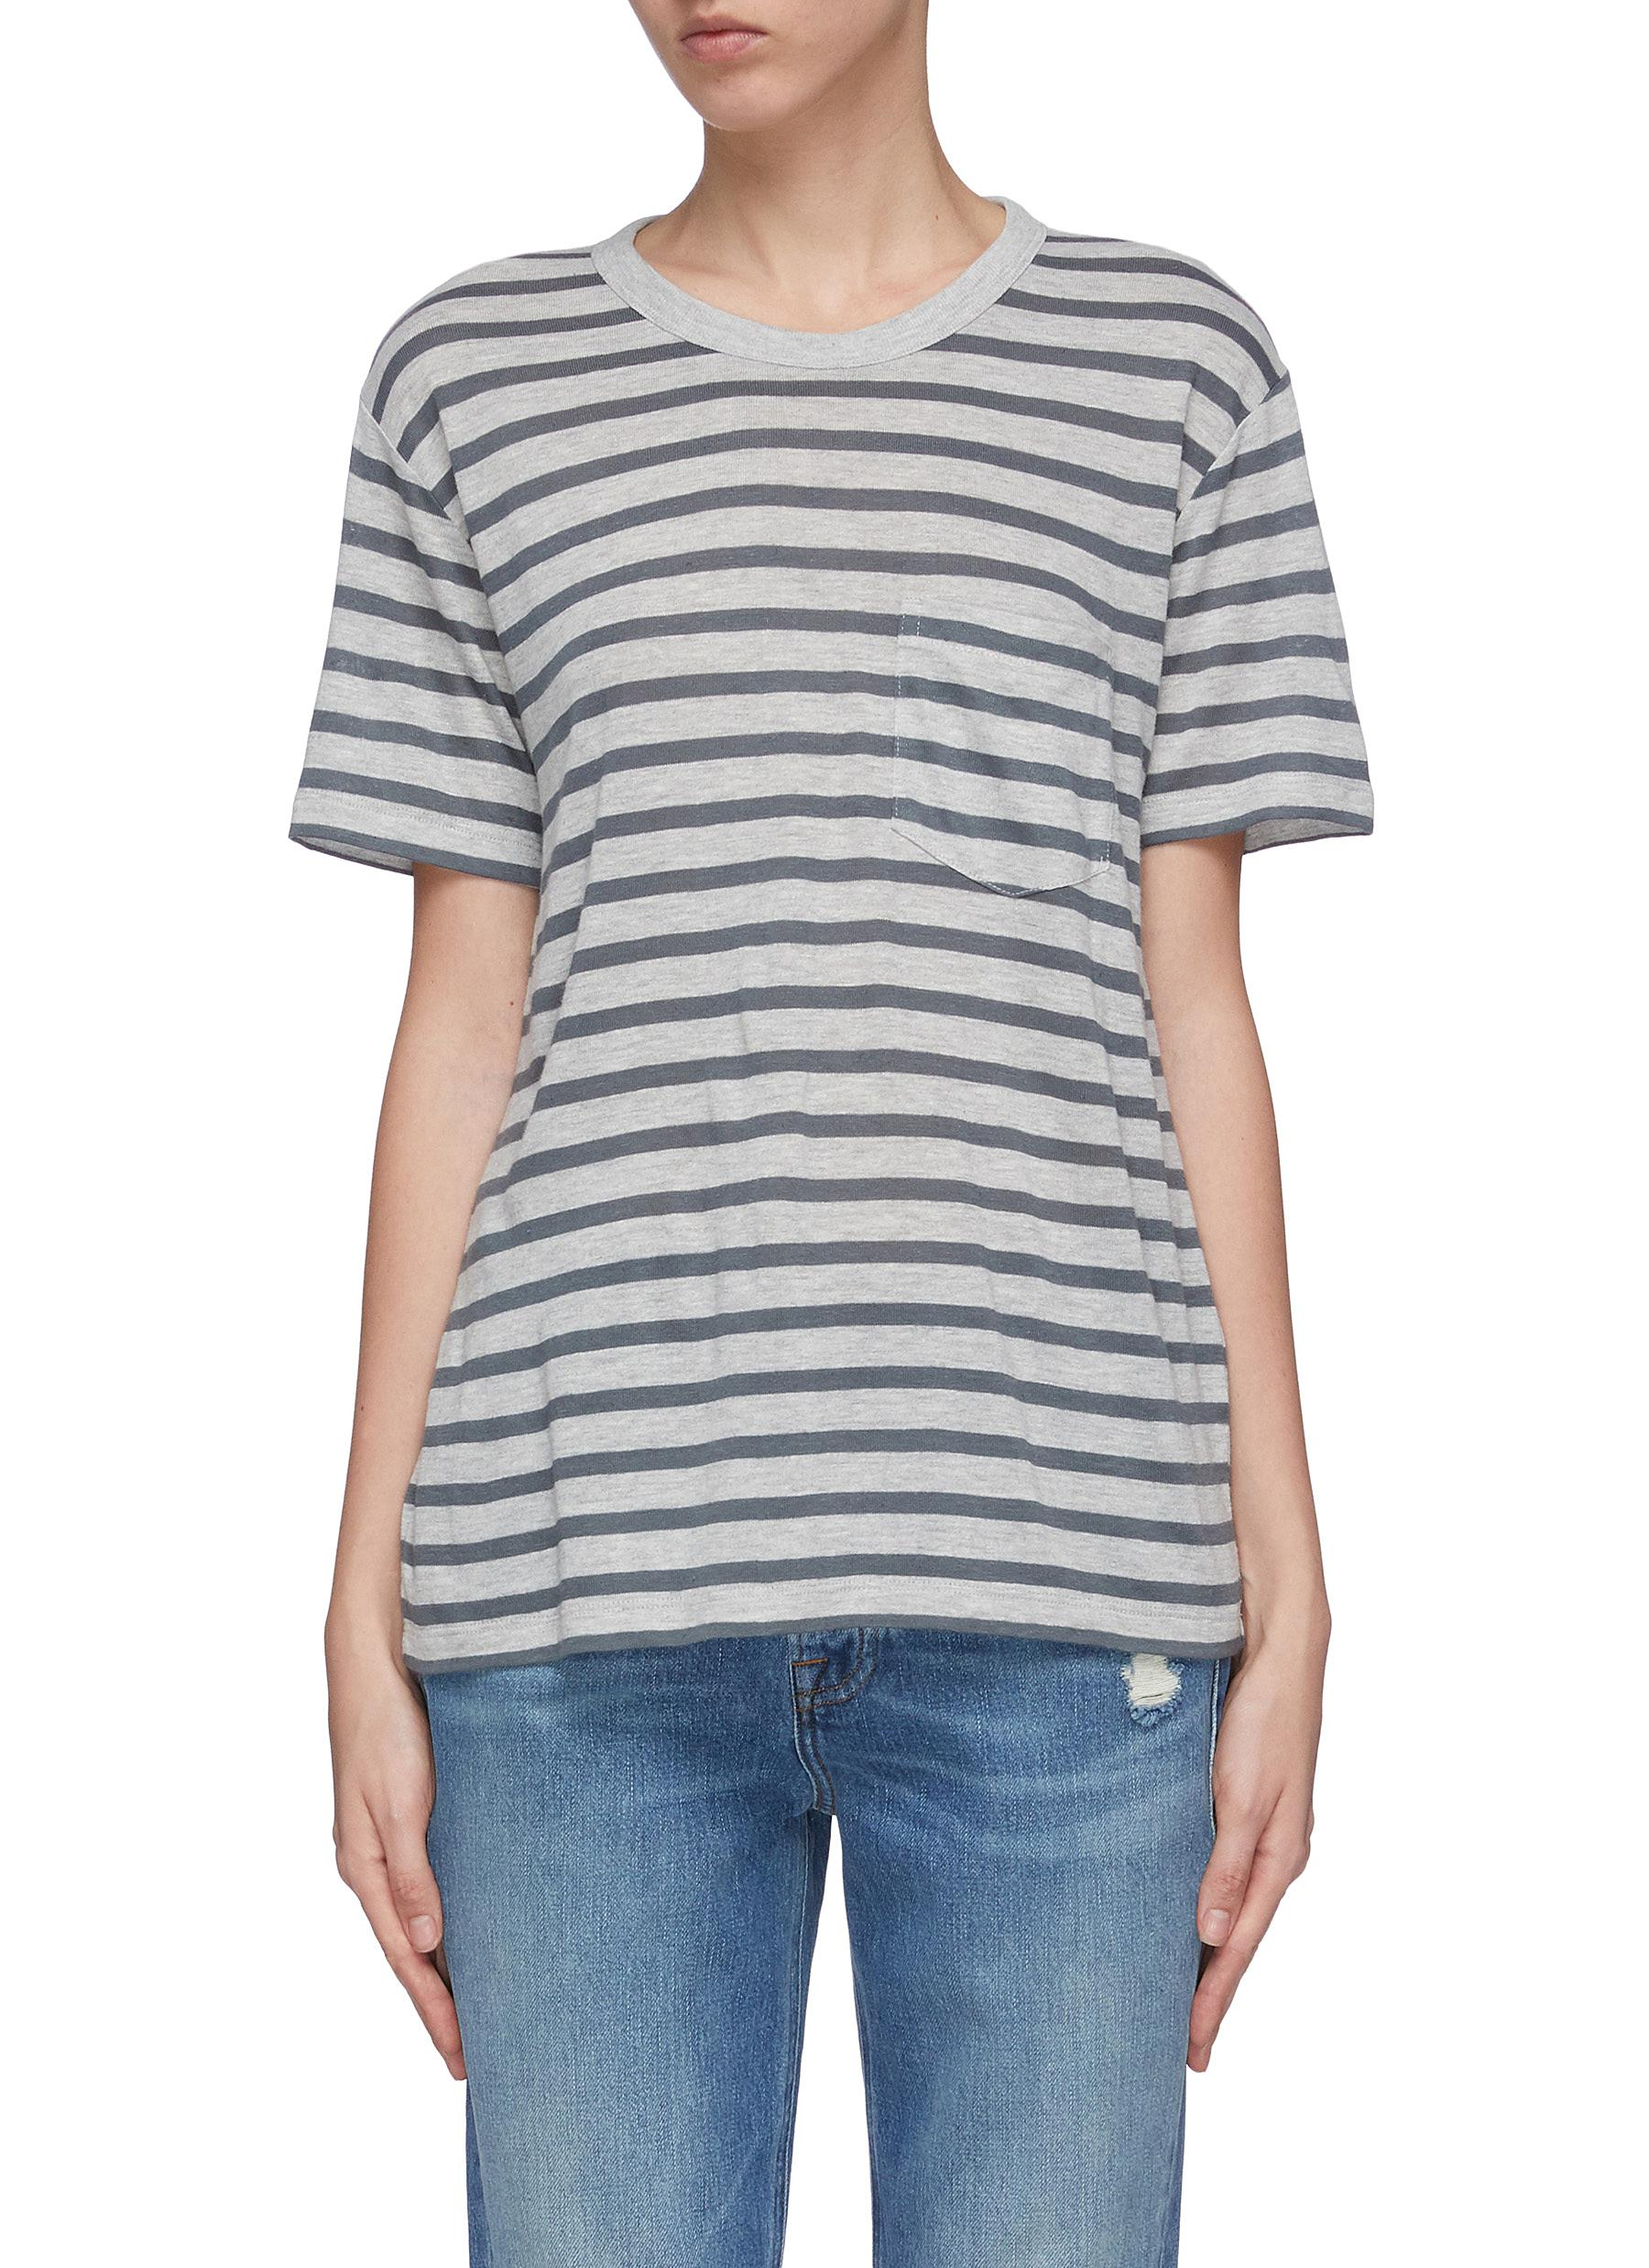 Chest pocket stripe T-shirt by Alexanderwang.T